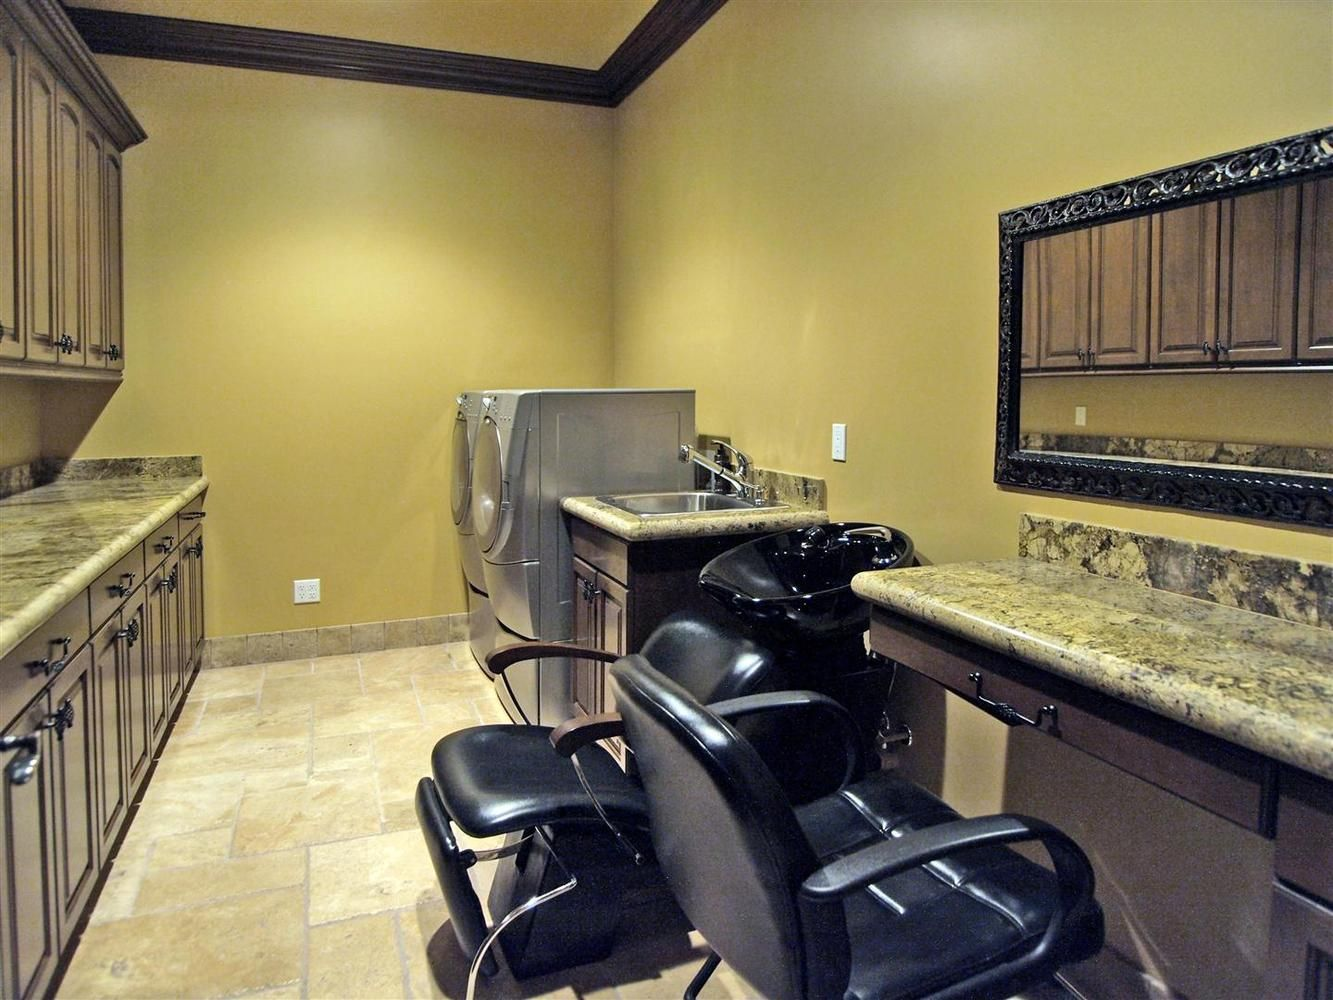 in-home salon & laundry room-that would be awesome | design ...